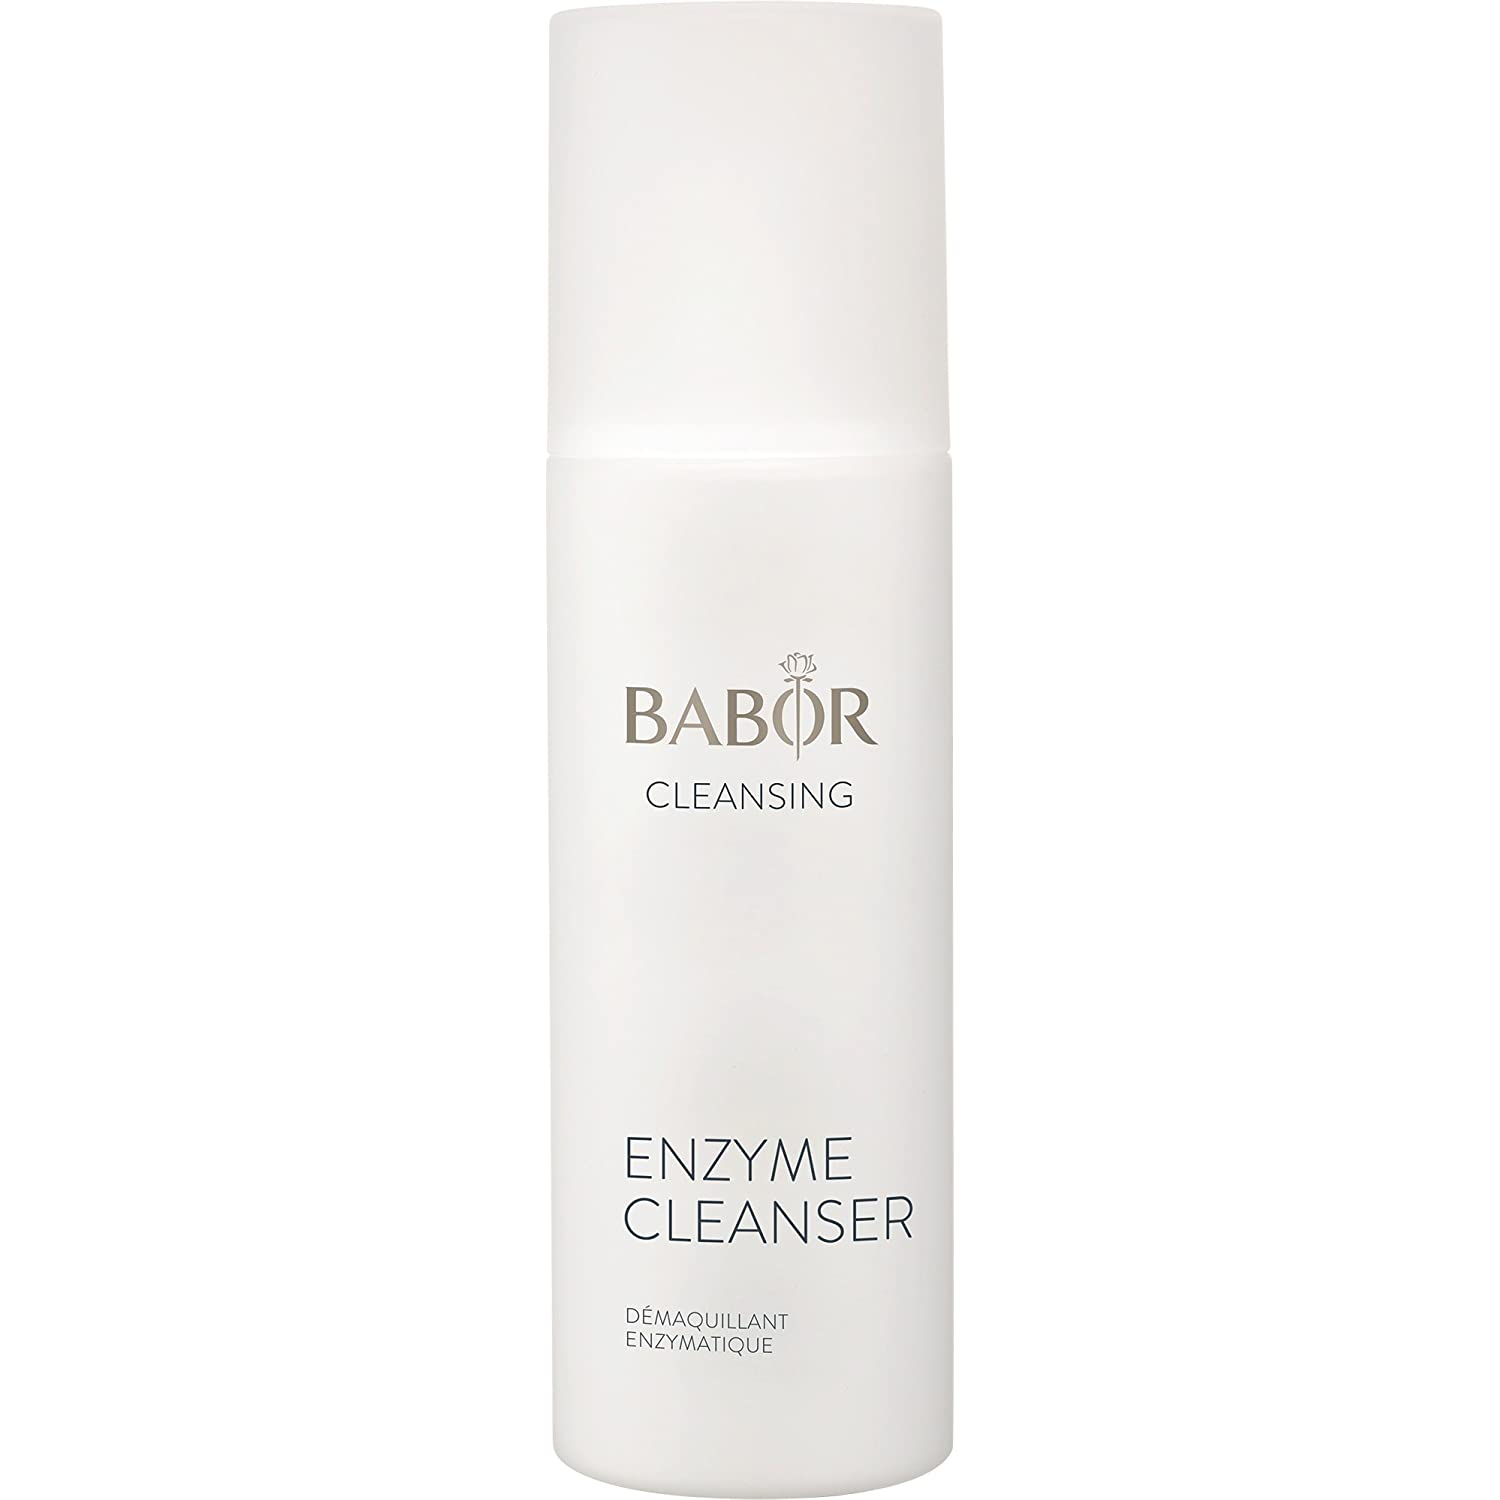 BABOR Cleansing 085404510641